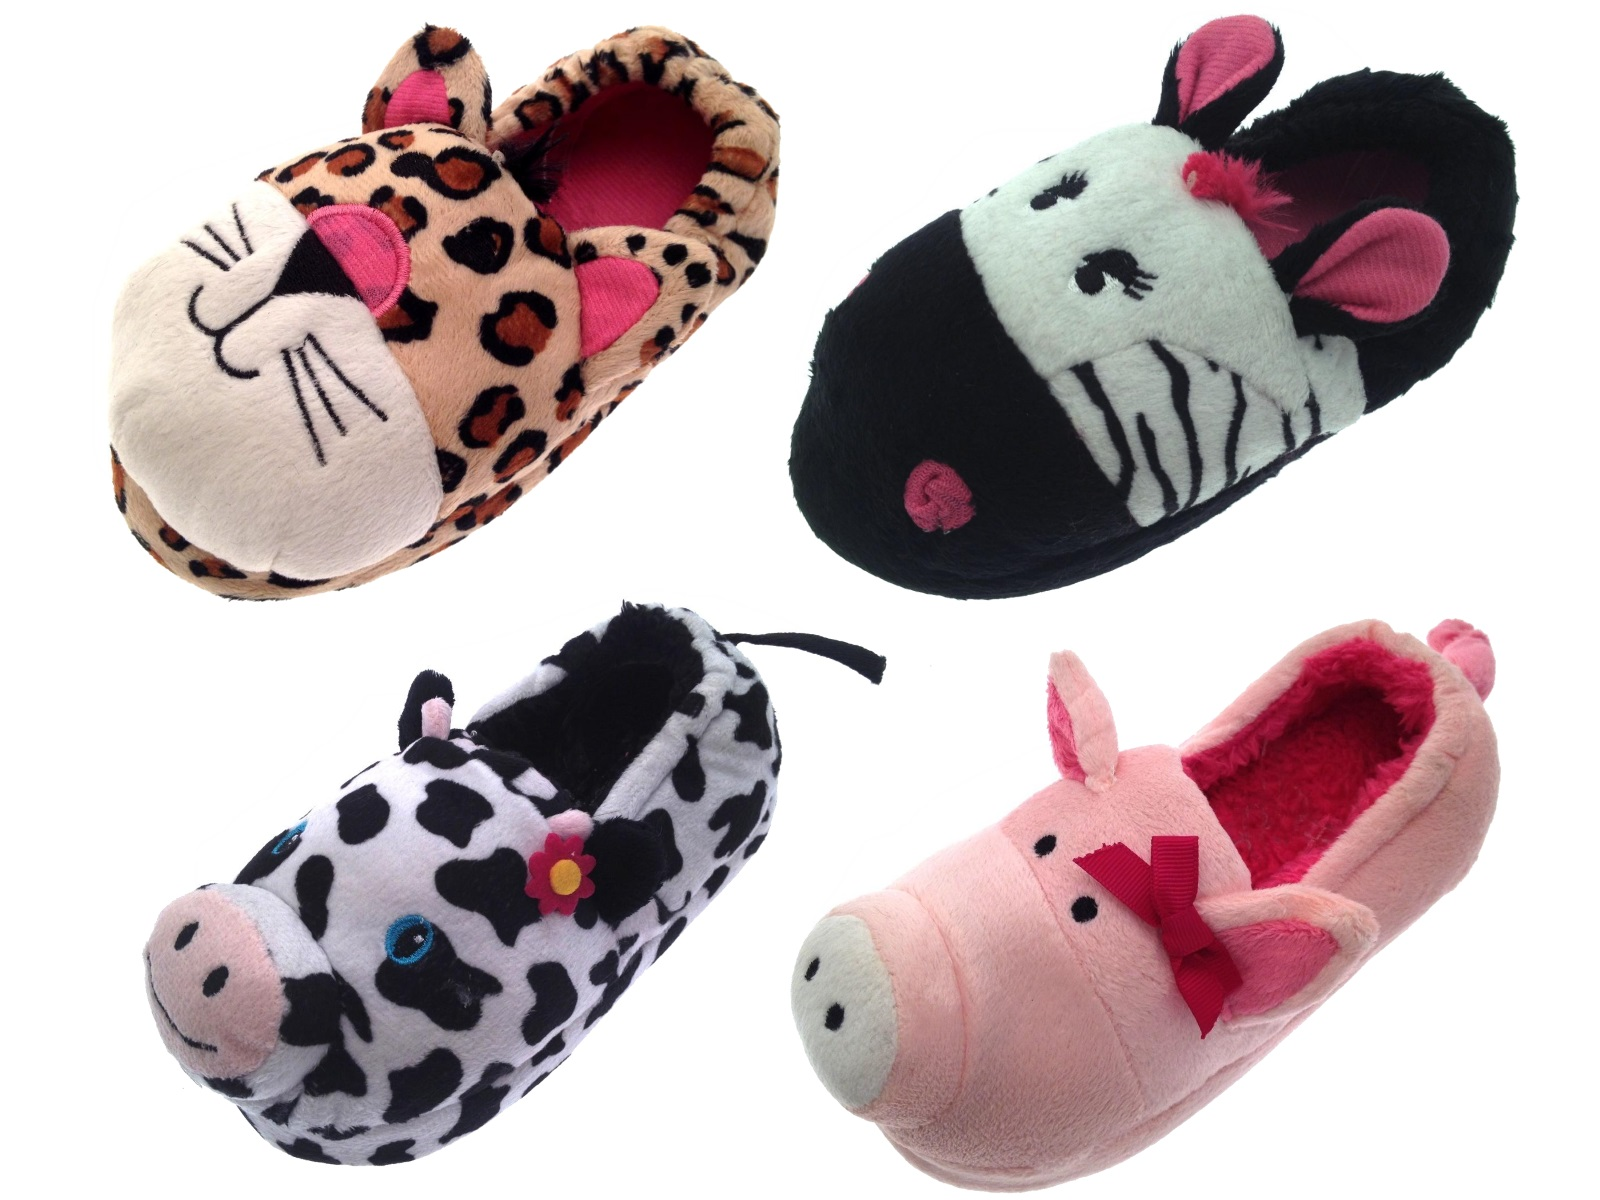 Find great deals on eBay for Kids Animal Slippers in Slippers. Shop with confidence.